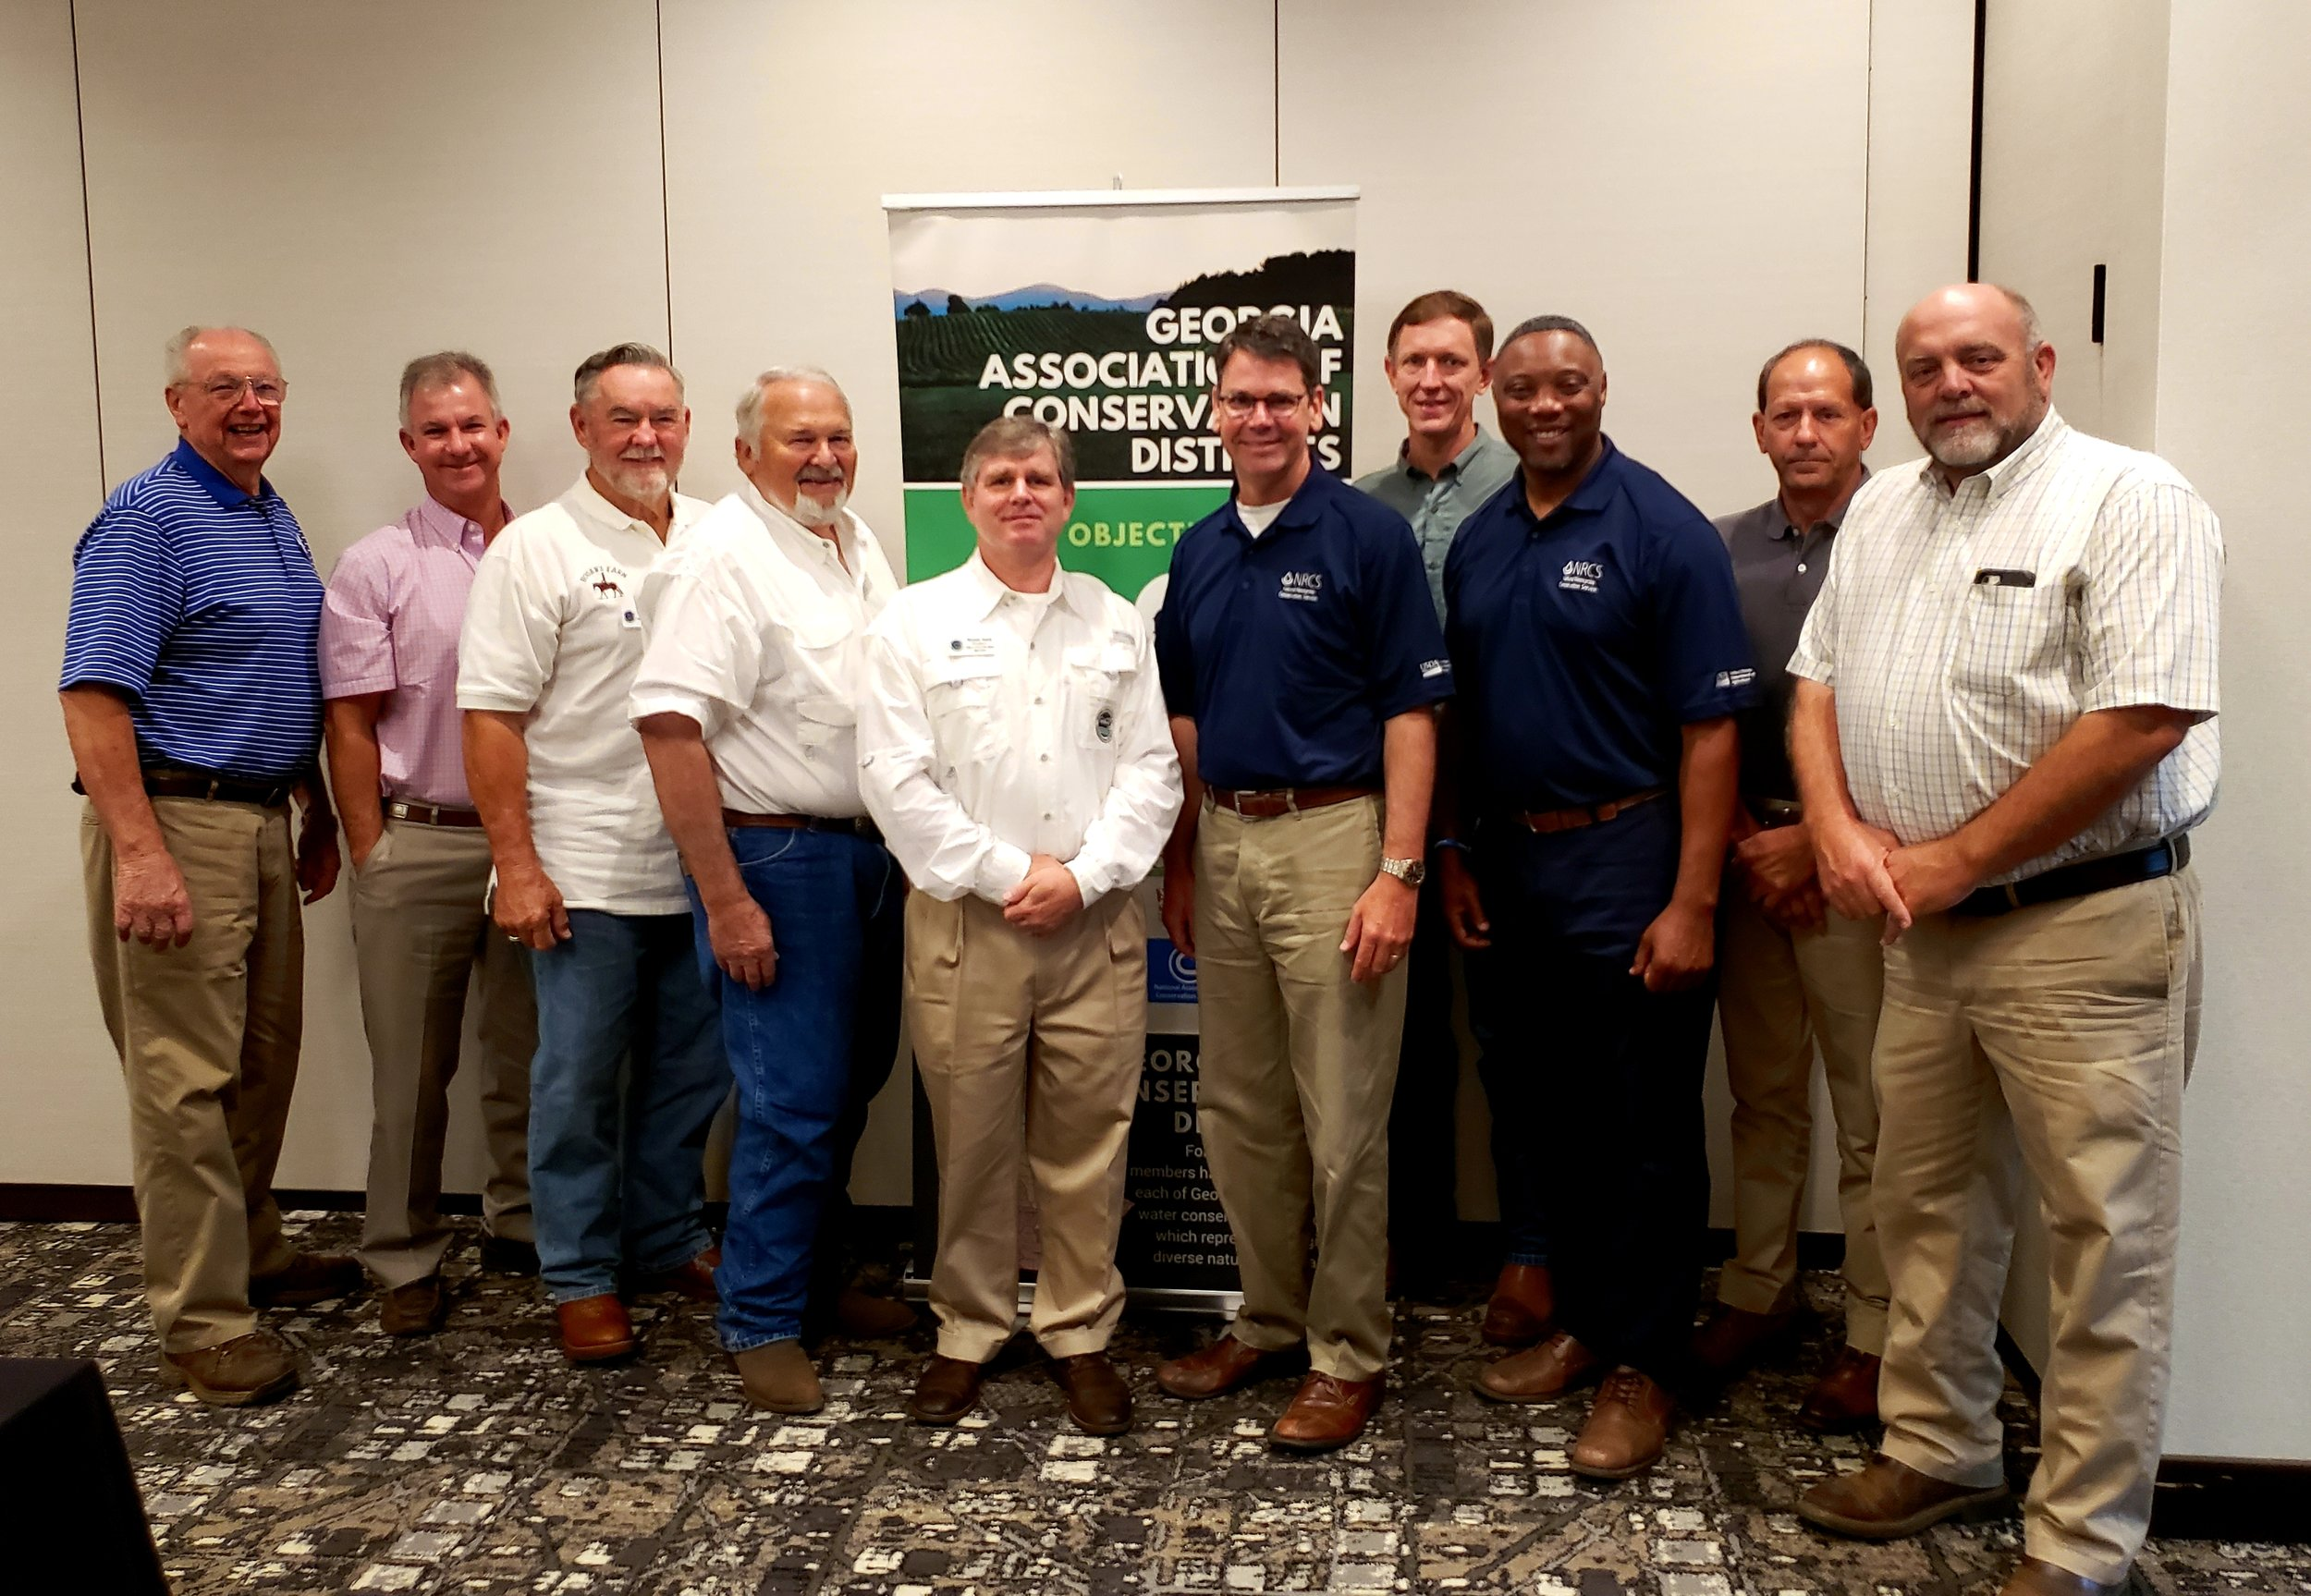 GACD Board Members with USDA NRCS Chief Matthew Lohr, State Conservationist Terrance Rudolph, and Southeast Regional Coordinator for Farm Production and Conservation (FPAC) Bill Bailey.